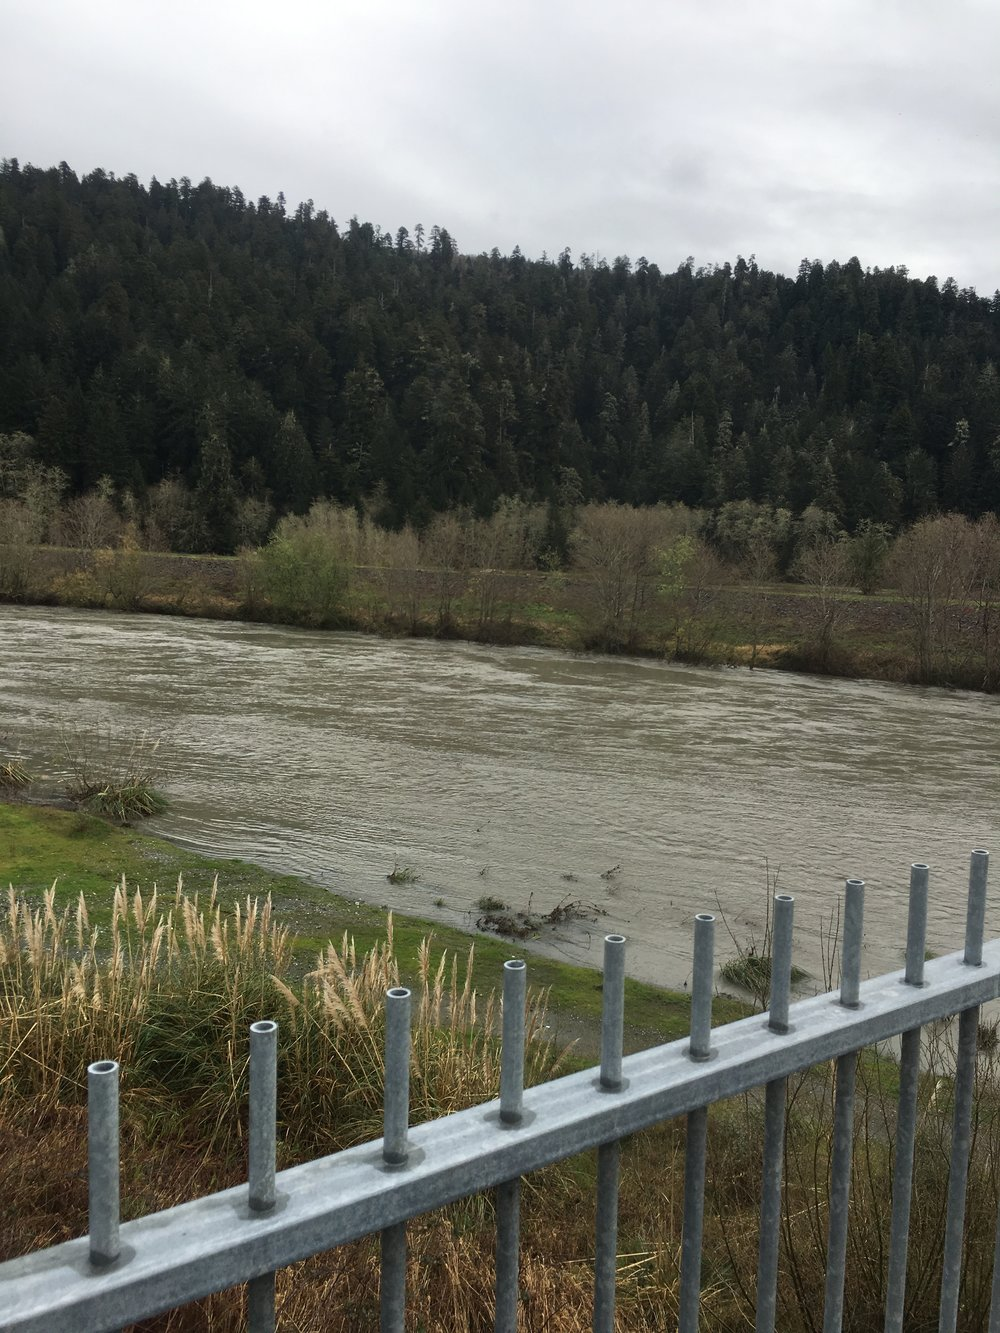 Pictured is Redwood Creek in Orik, Ca on February 10, 2017. Picture was taken by Mike Rasmussen of SalmonSacRiver.com.